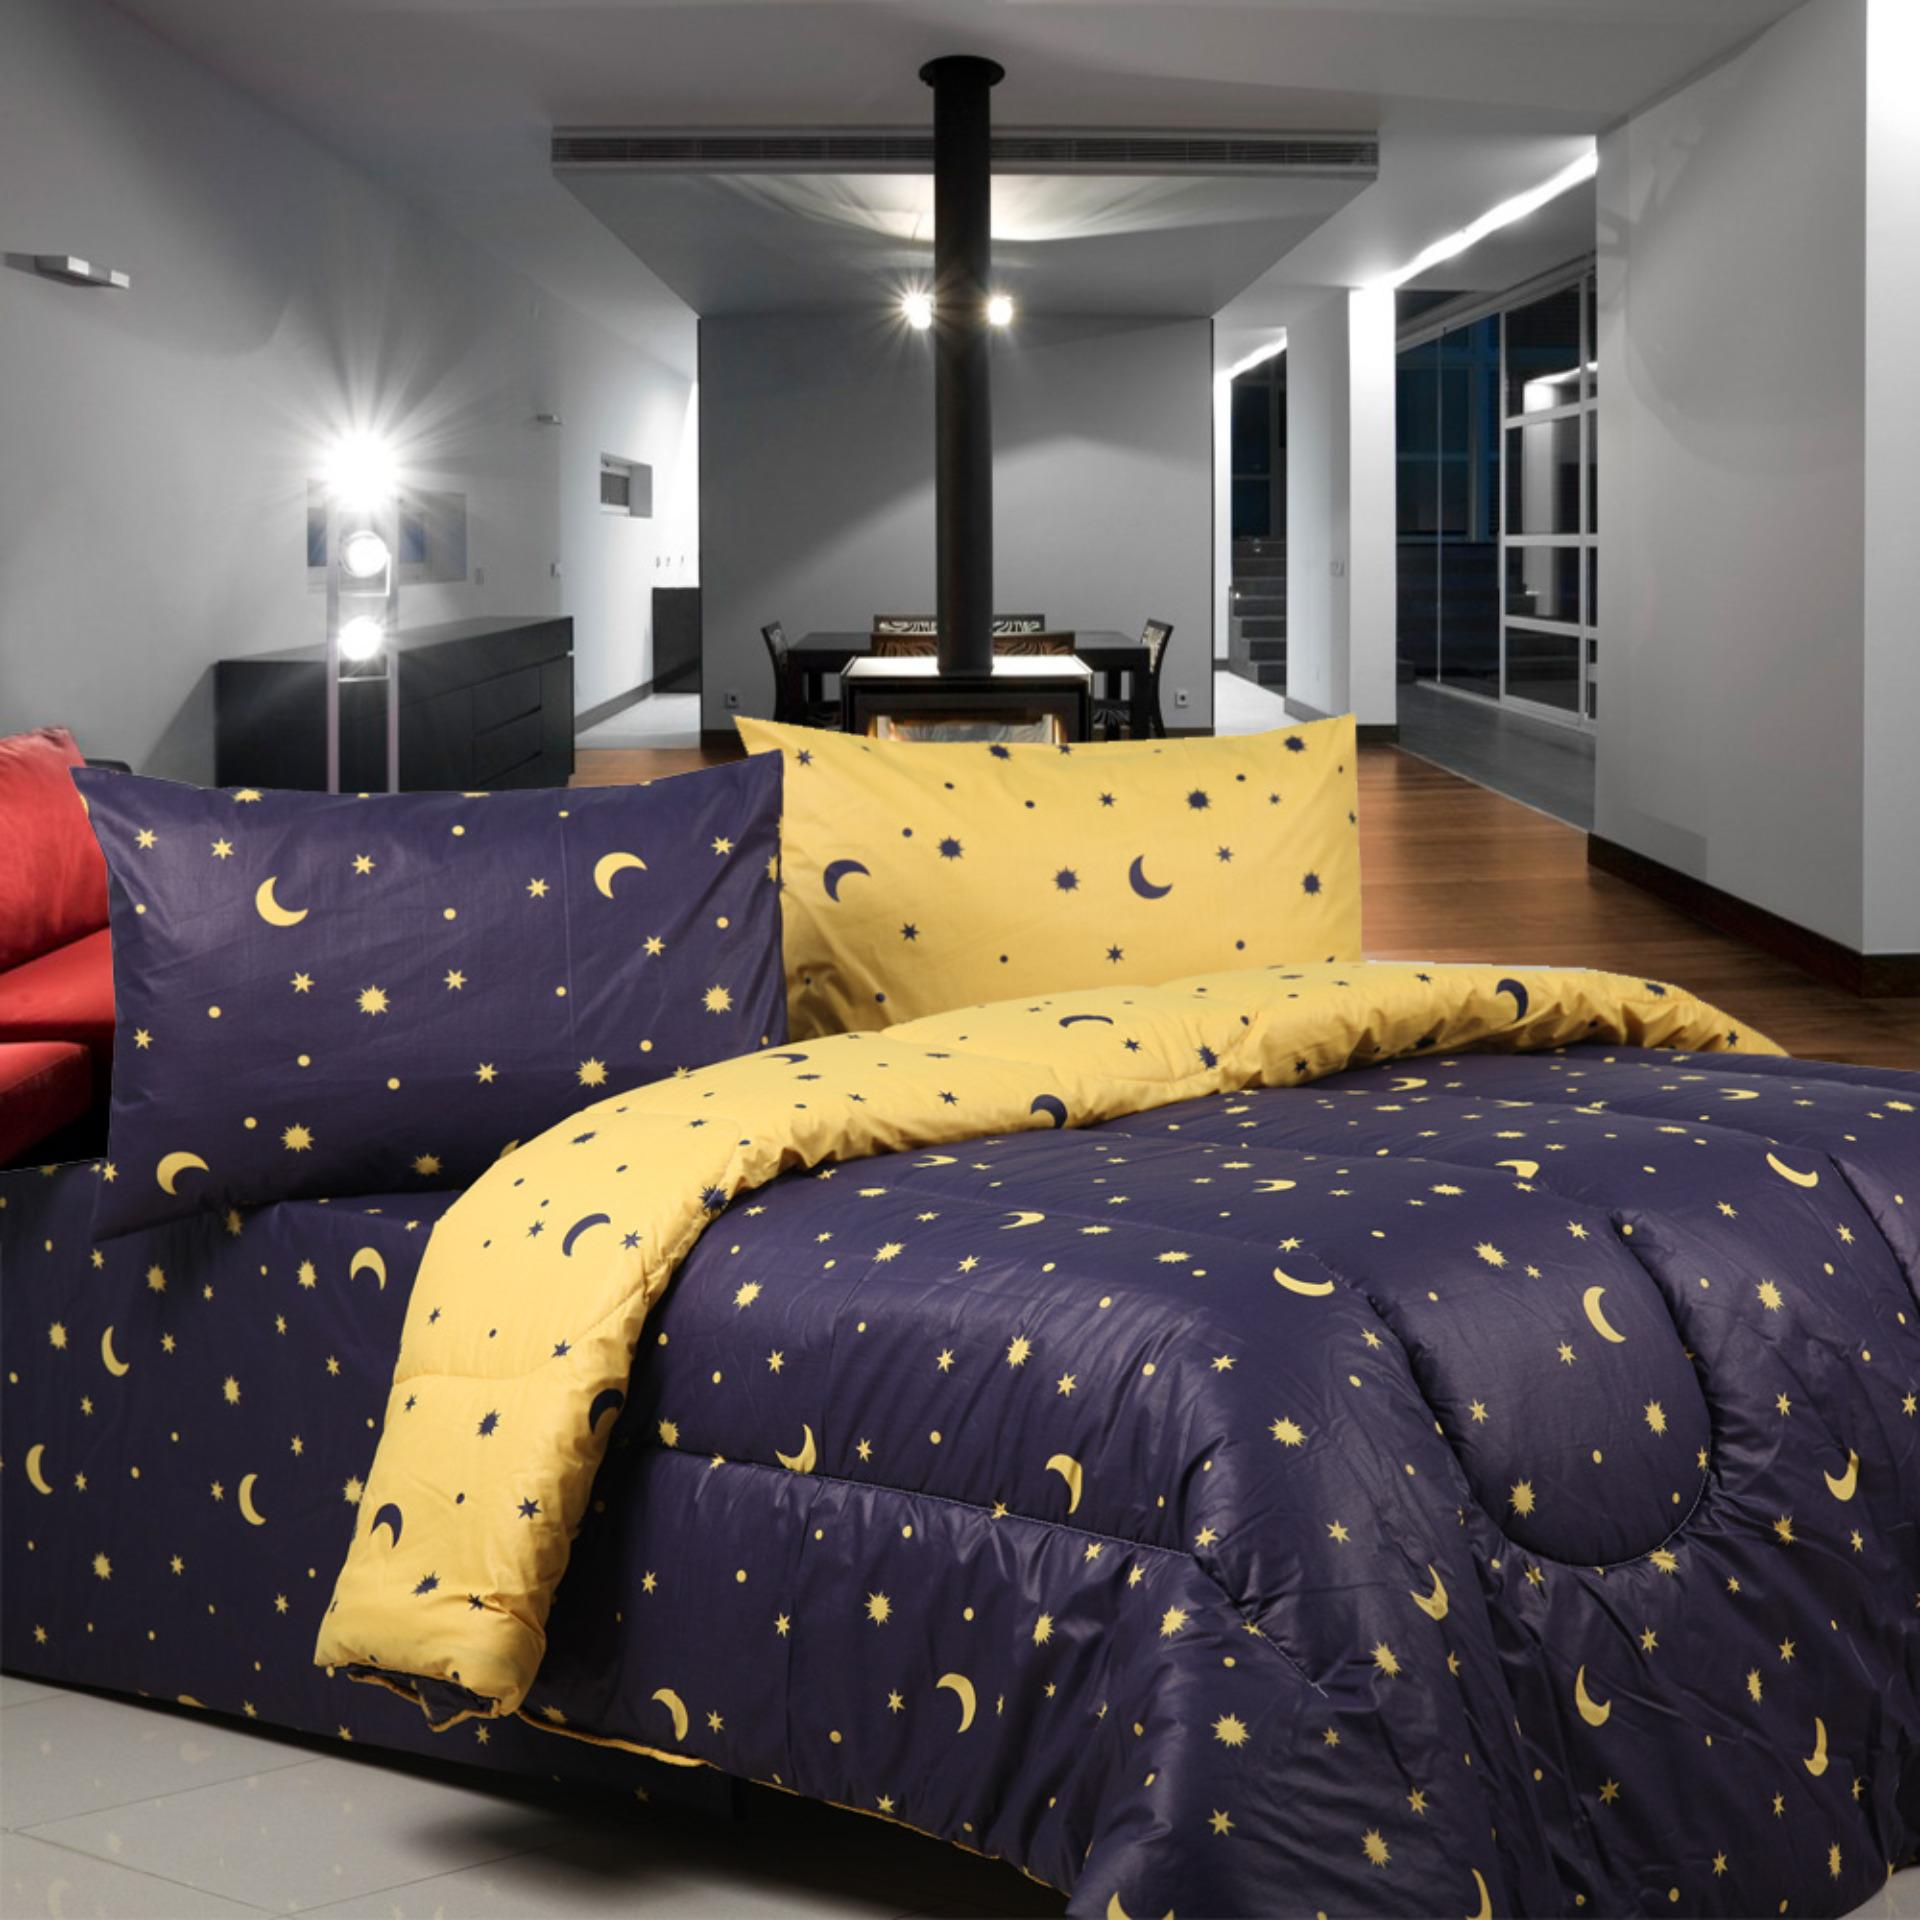 Jual Comforters Quilts Kasur V Bed Sprei Hello Kitty Extra King Size 200x200 Sierra Starry Night Navy X Kuning